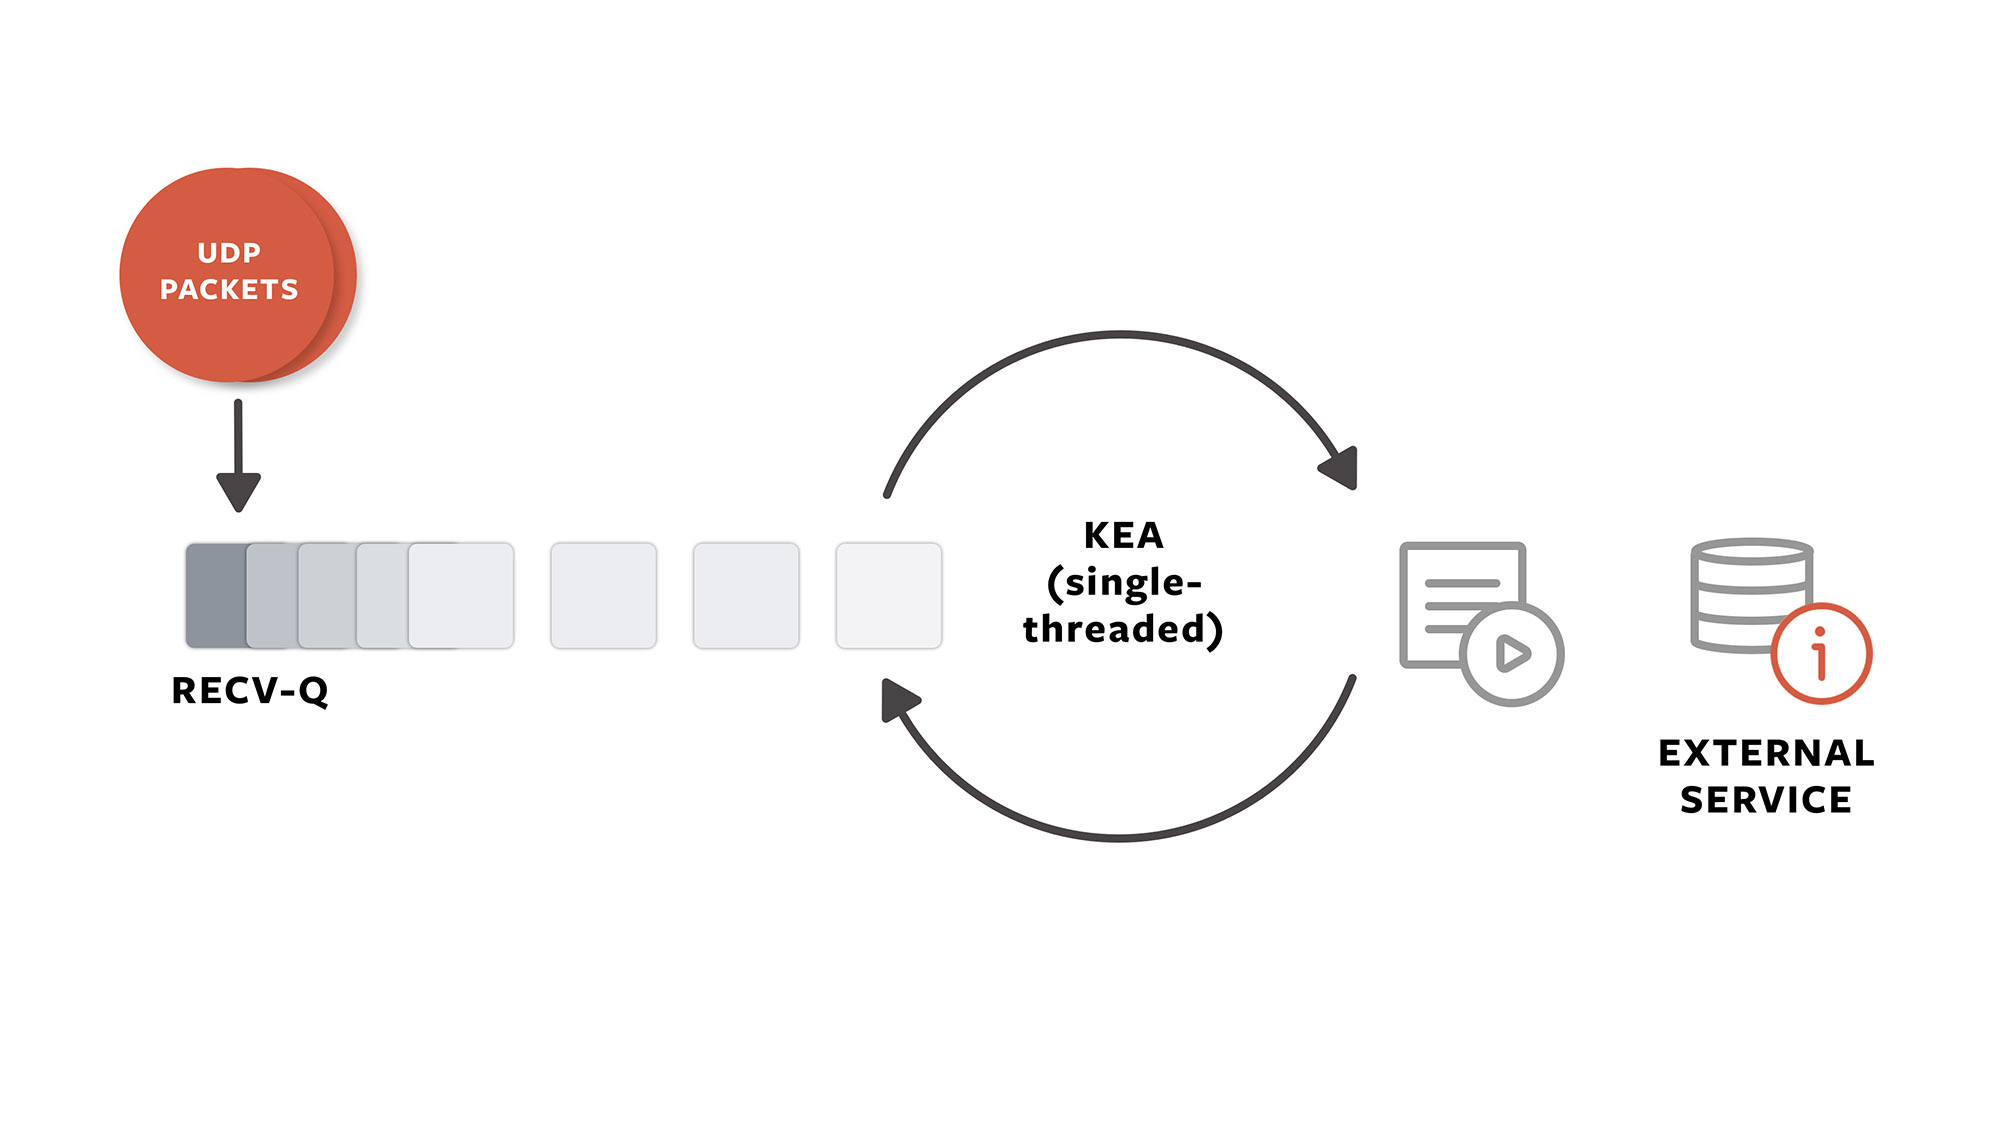 Kea is a single-threaded server. When a request is served, the process blocks while incoming requests queue up in the kernel Recv-Q buffer.